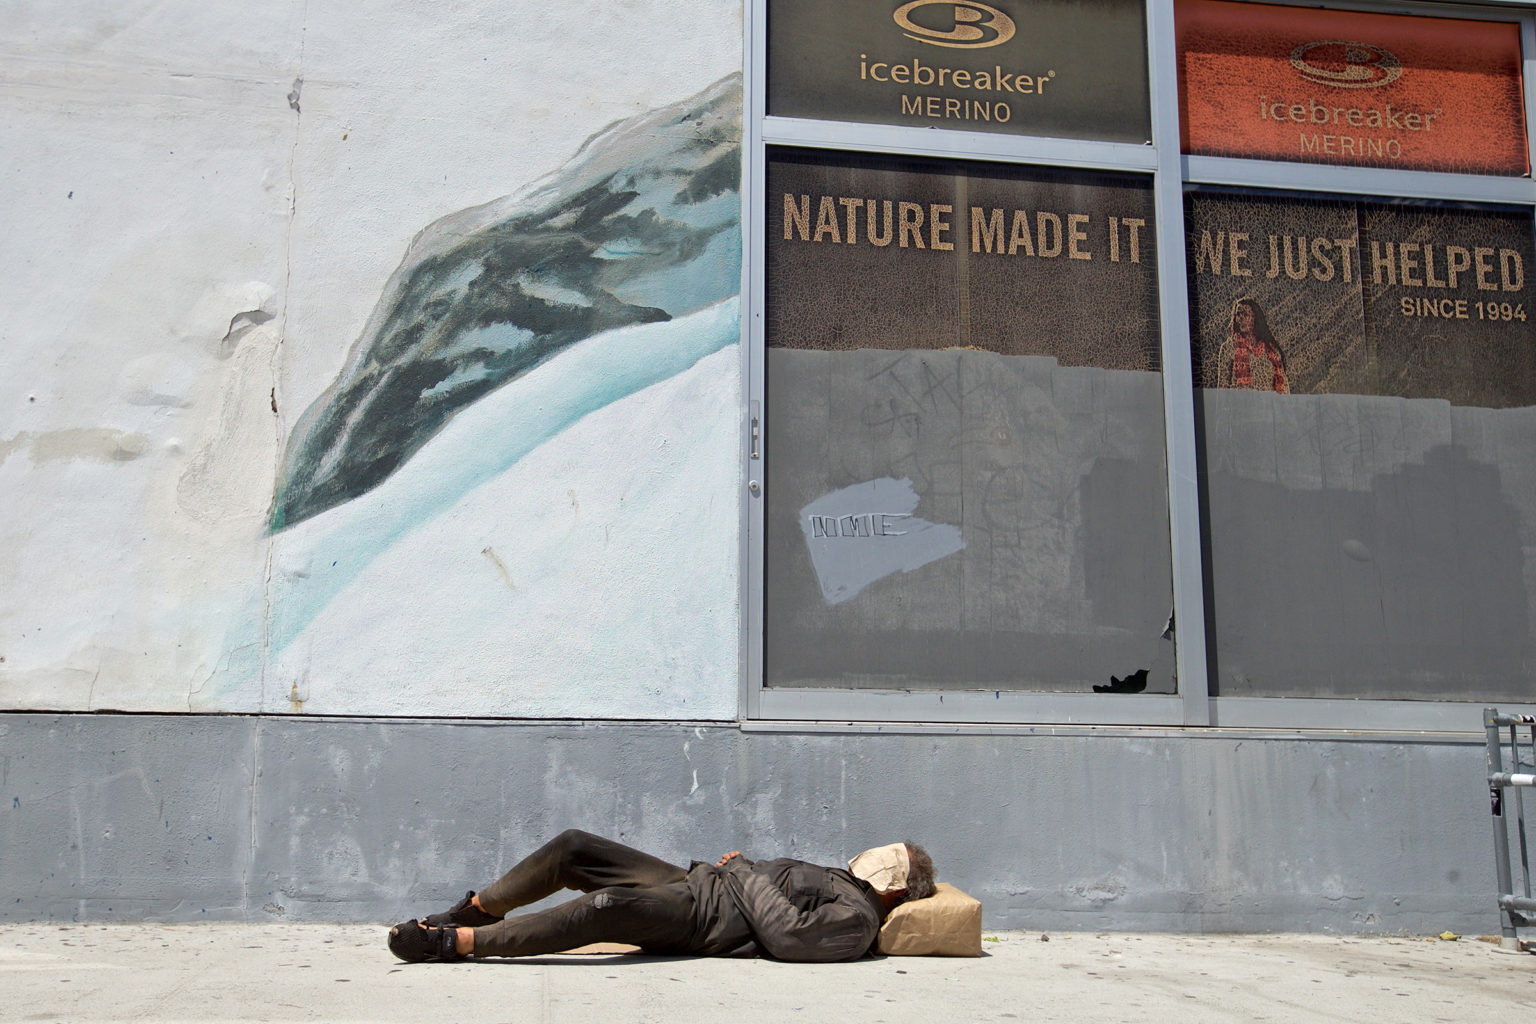 A homeless man sleeps on the sidewalk outside the old Lombardi Sports building on Polk Street on May 16. One of many community benefit districts in The City is along a stretch of Polk between California and Broadway. (Kevin N. Hume/S.F. Examiner)